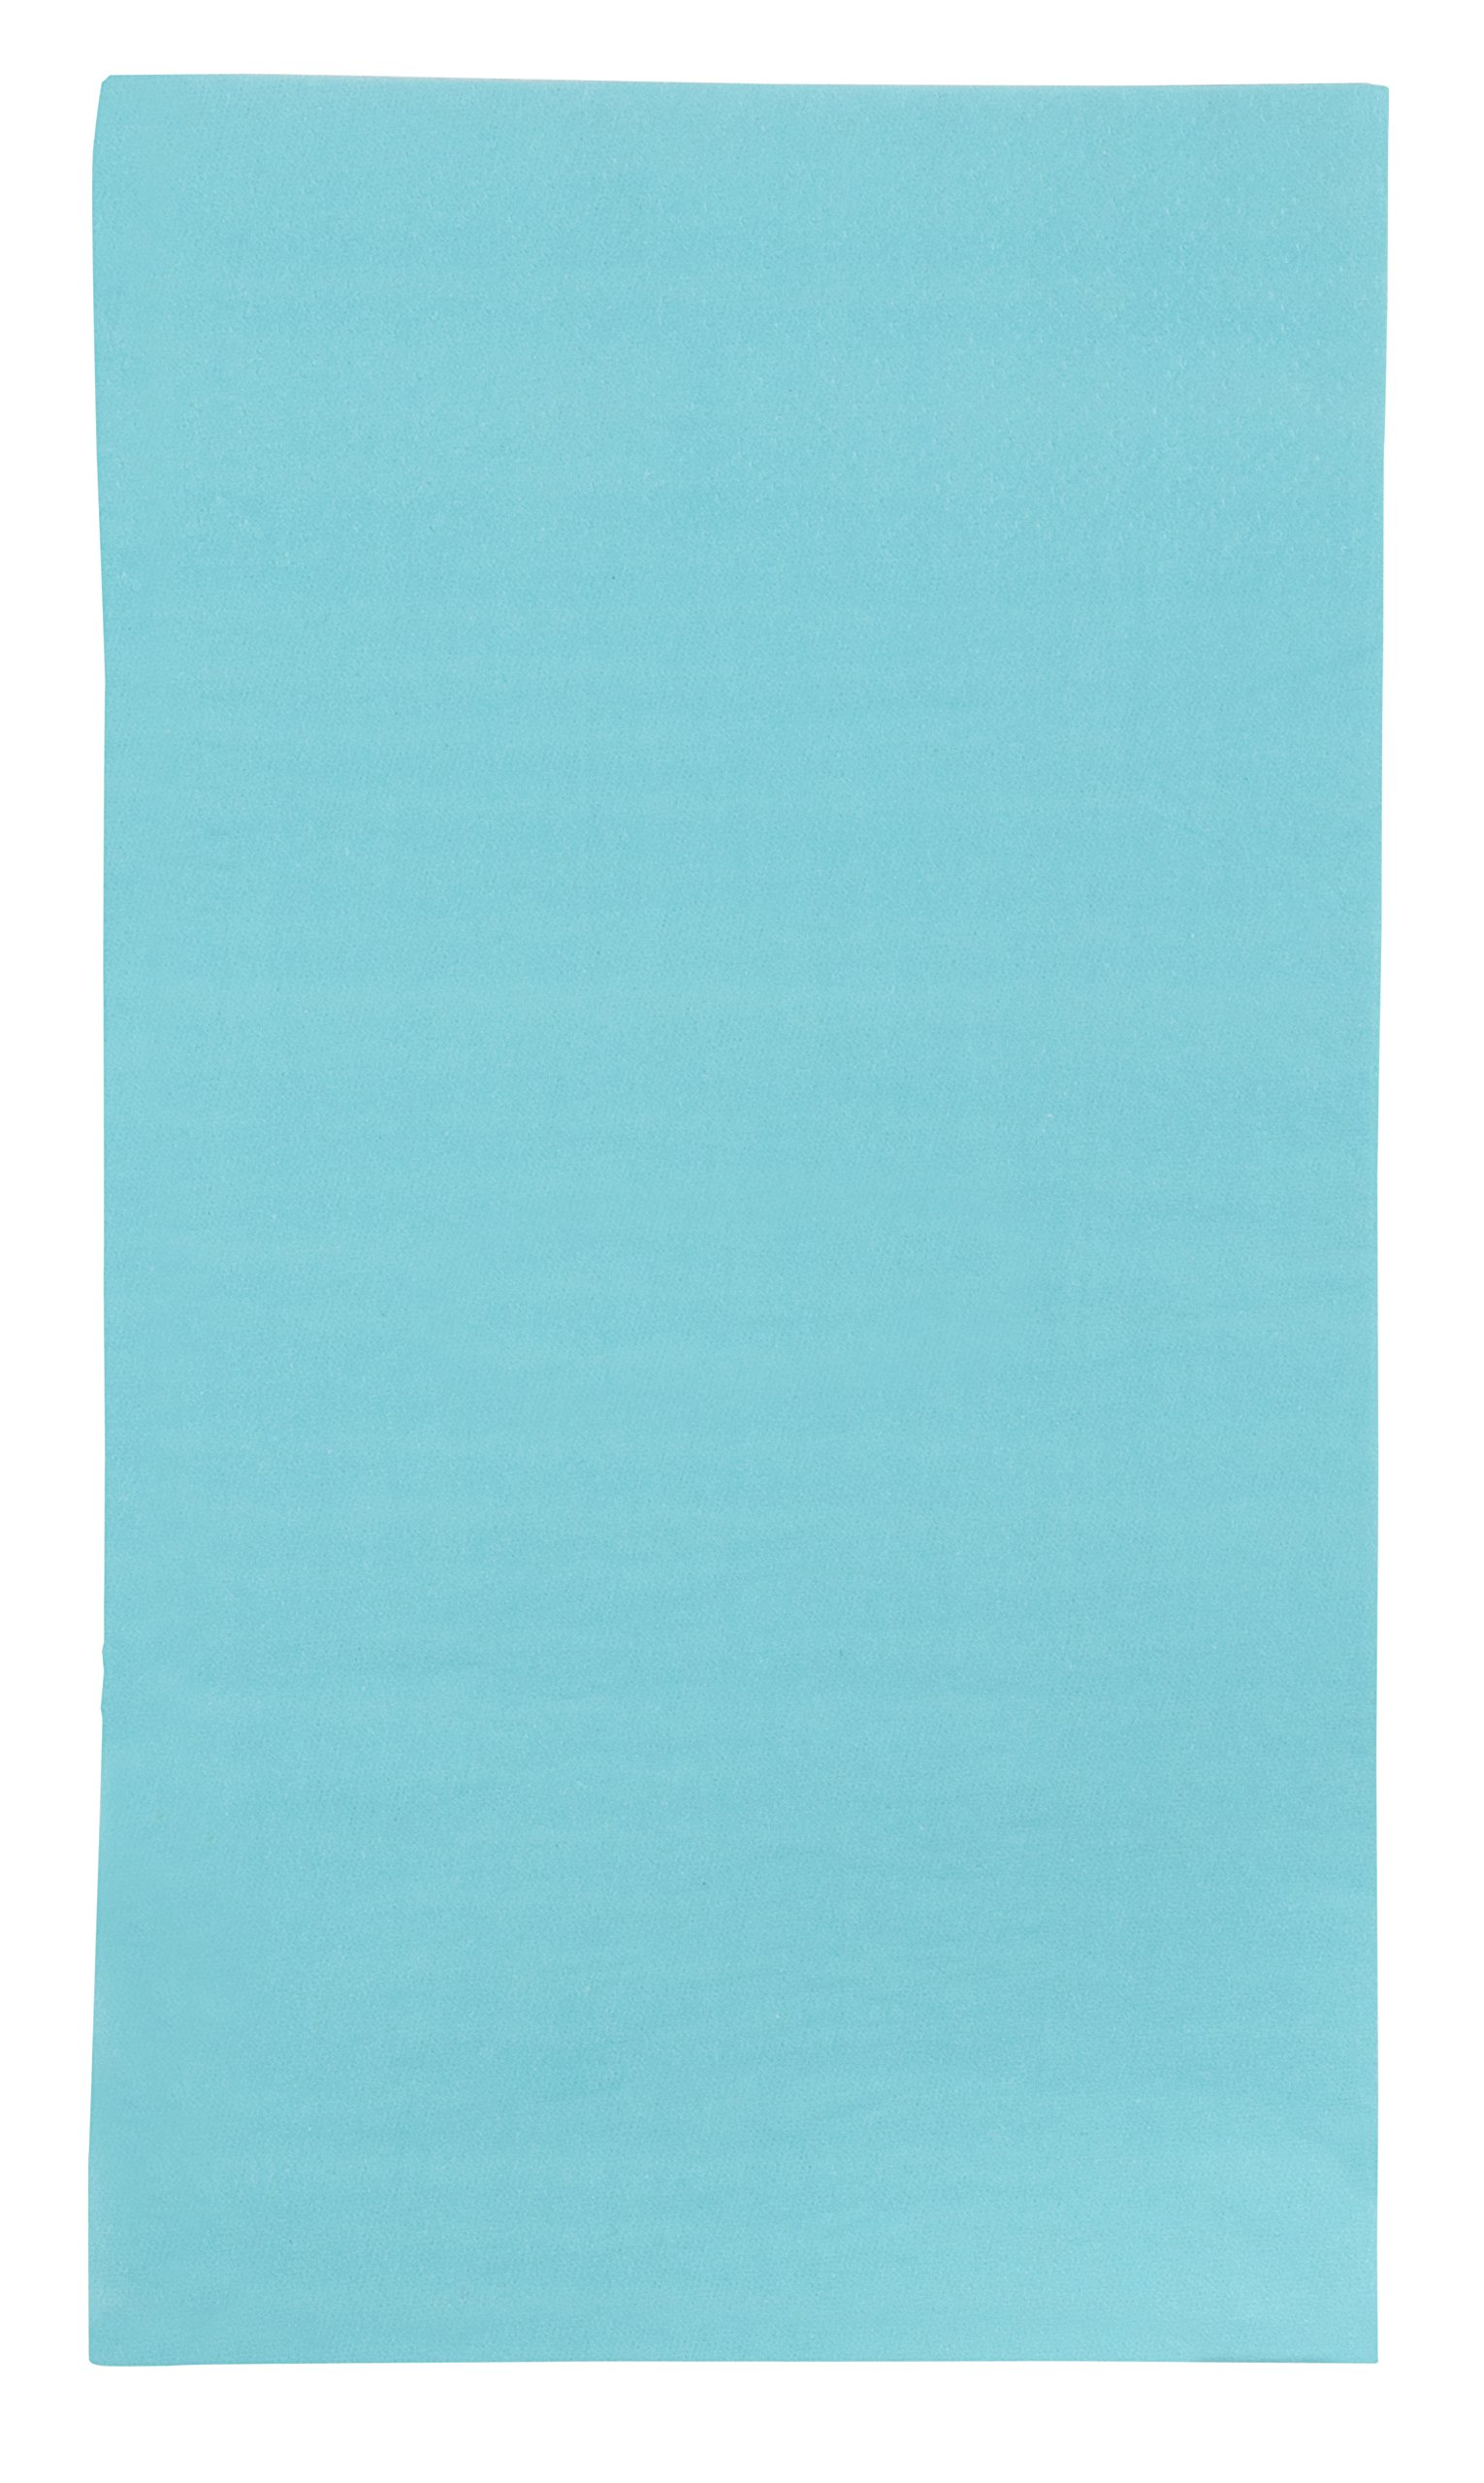 Dinner Napkins - 120-Pack Disposable Paper Napkins, 2-Ply Absorbent Napkins for Kitchen, Weddings, Birthday Parties, Teal Blue, Unfolded 15.5 x 13 Inches, Folded 7.5 x 4.25 Inches